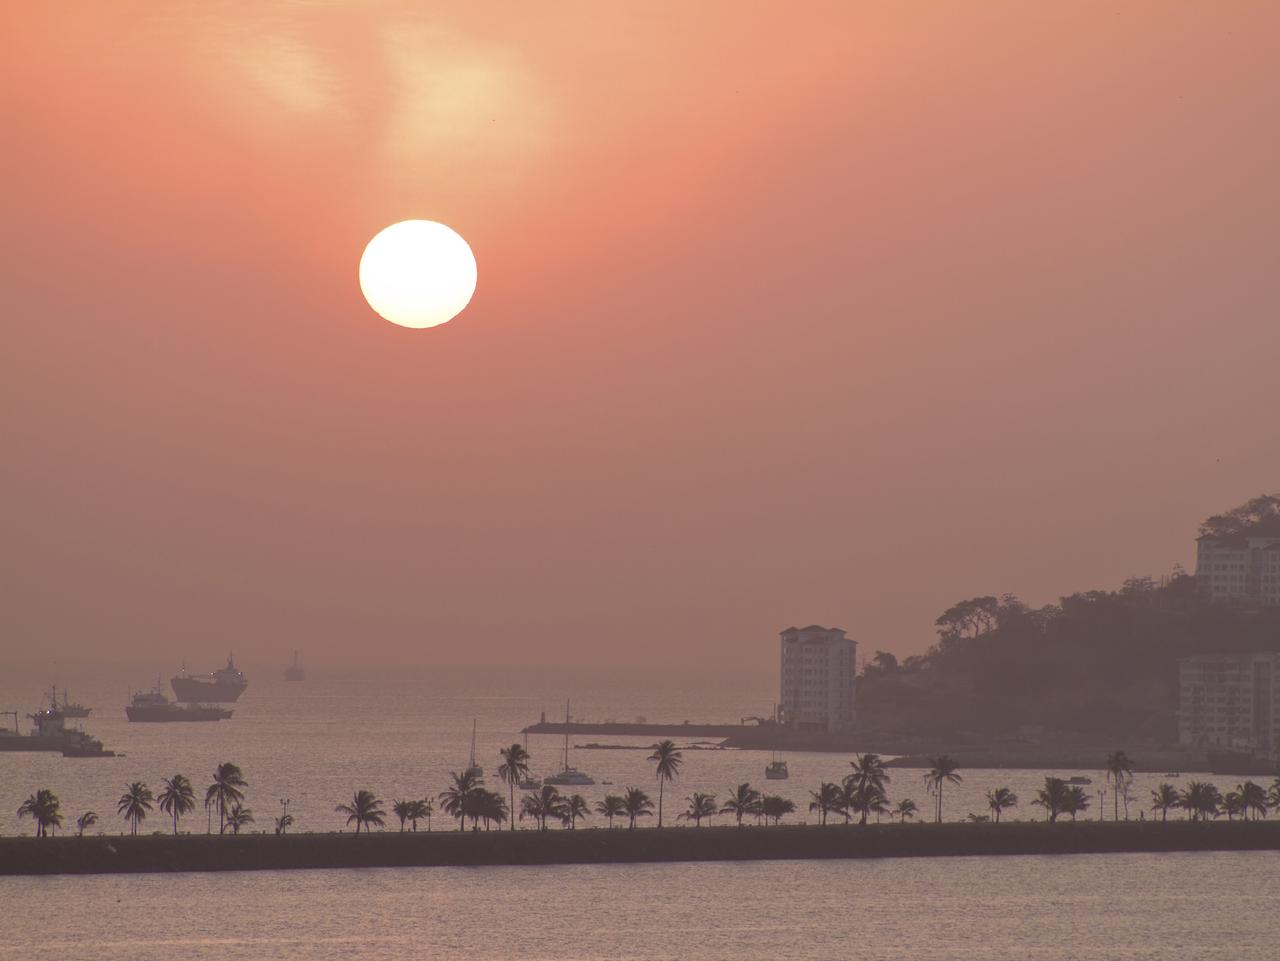 ESCAPE: PANAMA CANAL .. Veronica Matheson story .. Beautiful view of entry to the Panama Canal at sunrise. Picture: iStock